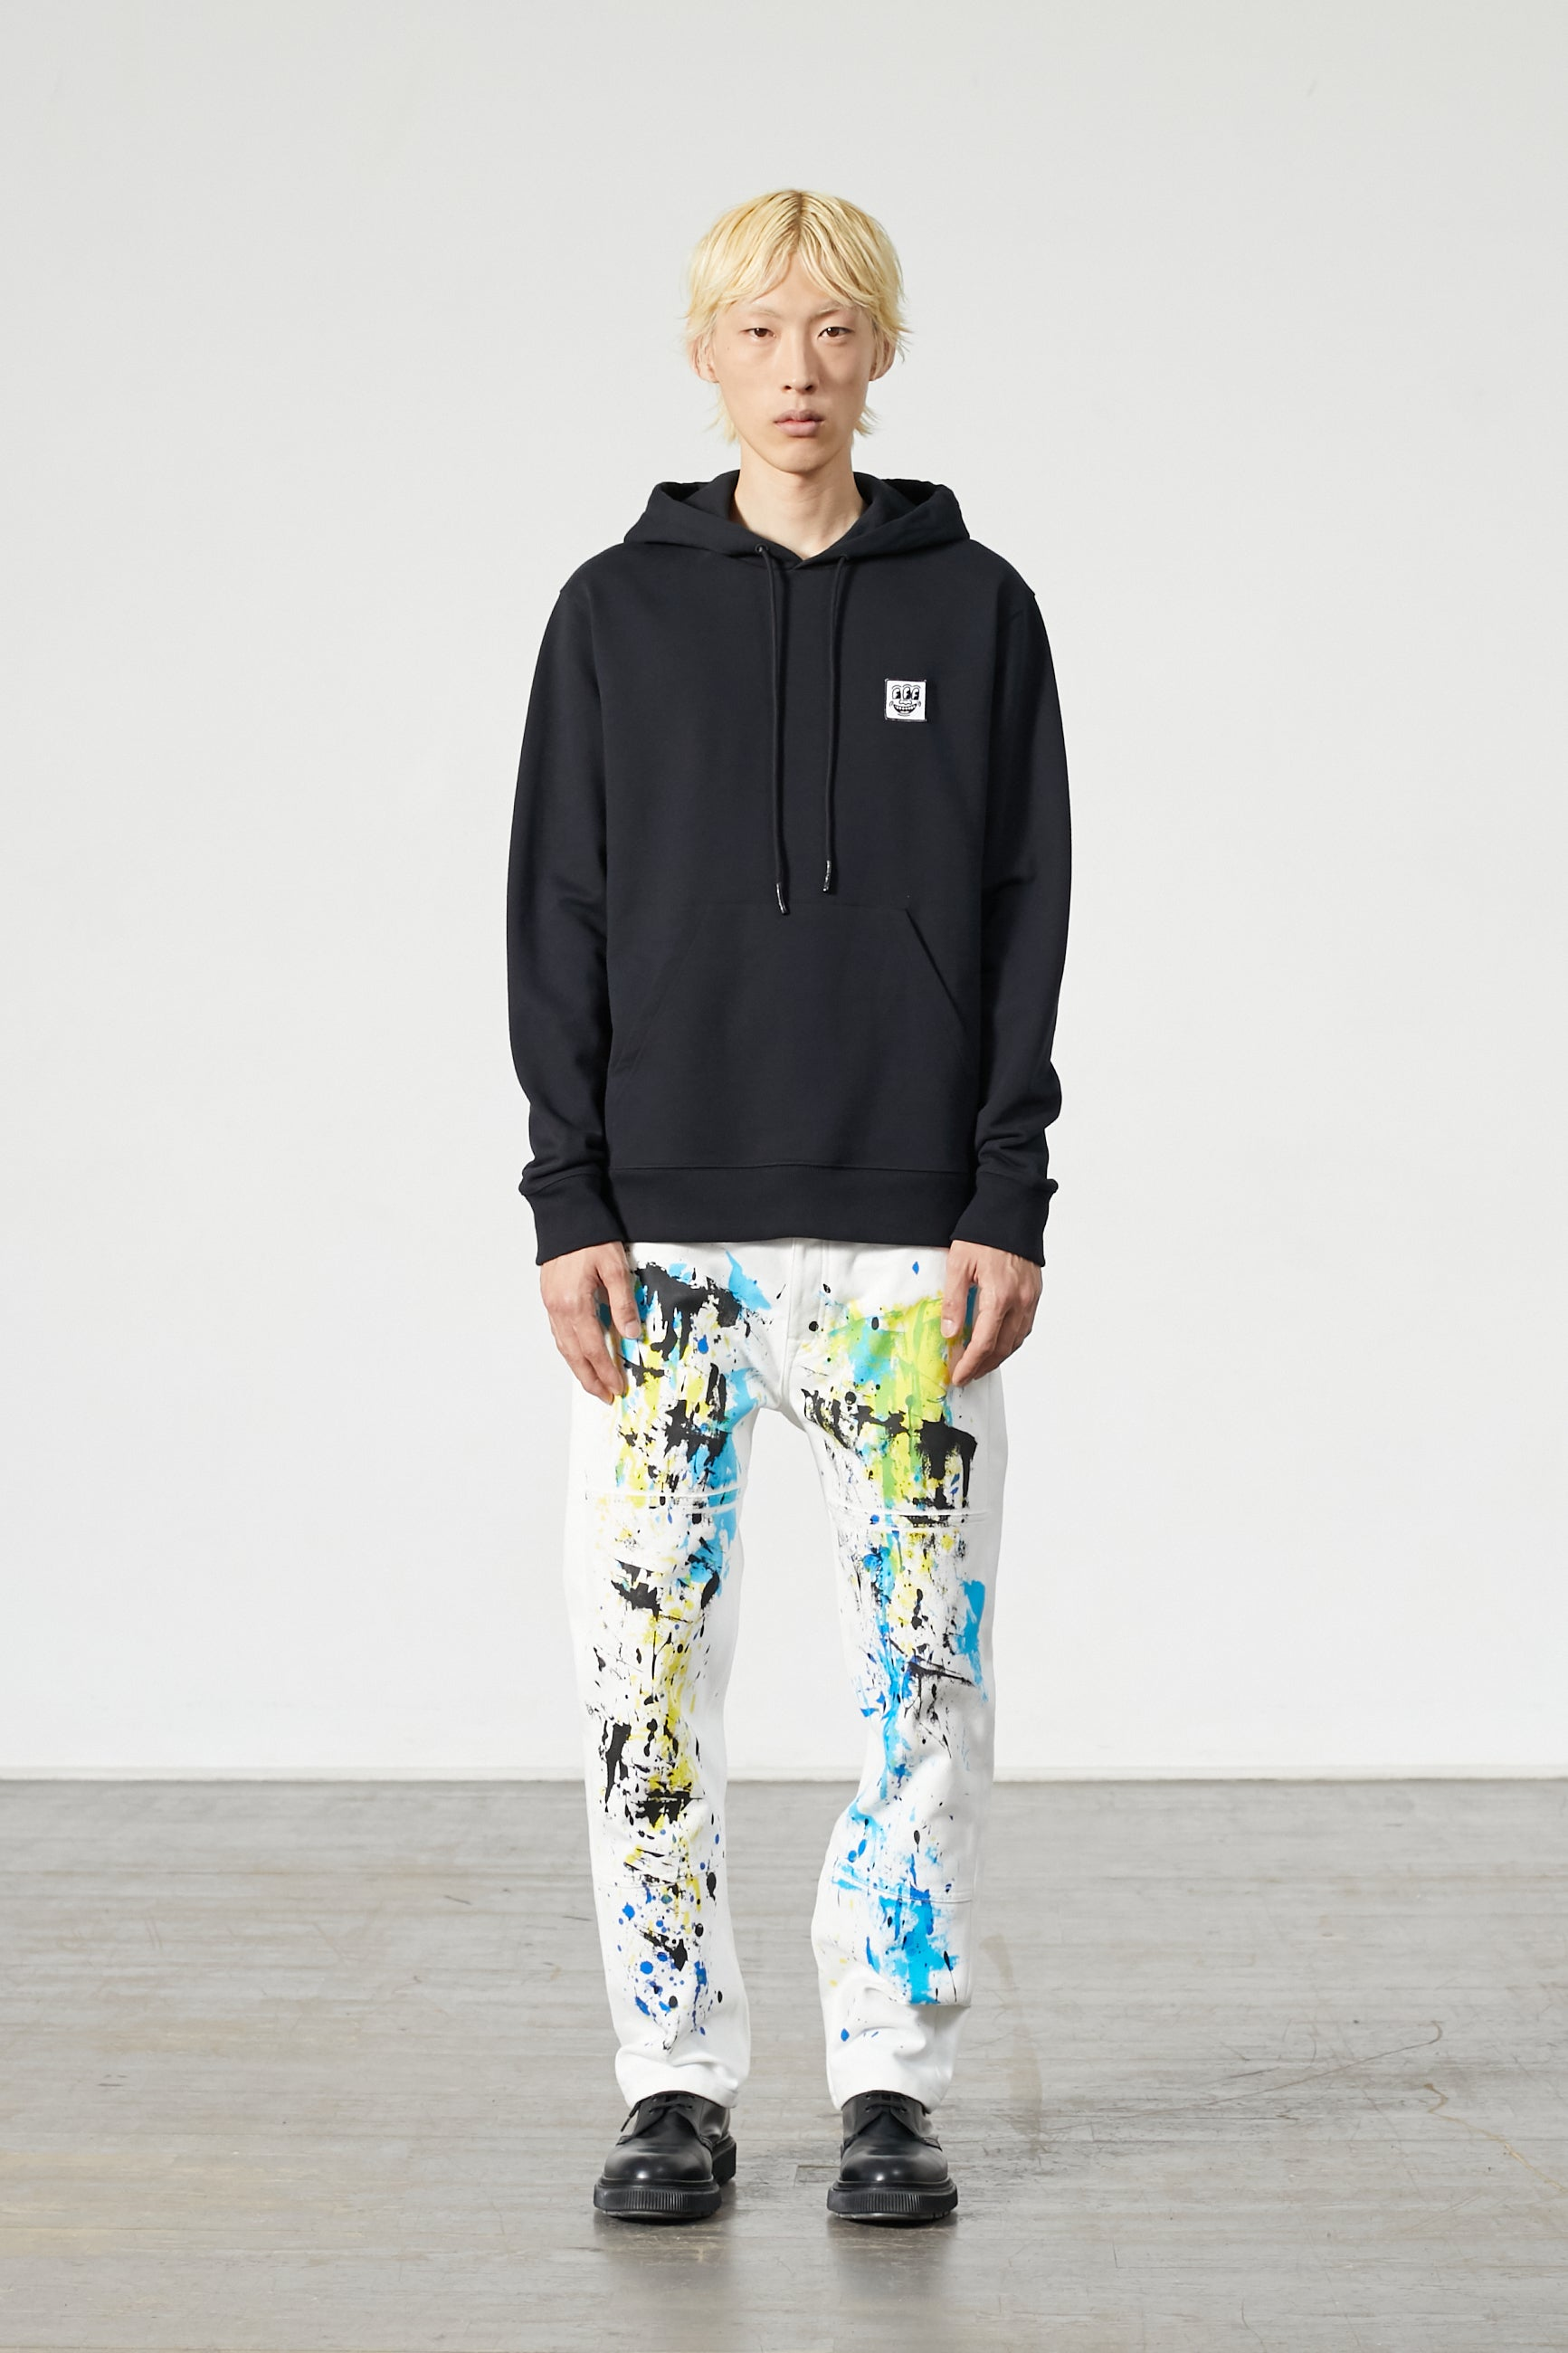 KLEIN PATCH KEITH HARING BLACK